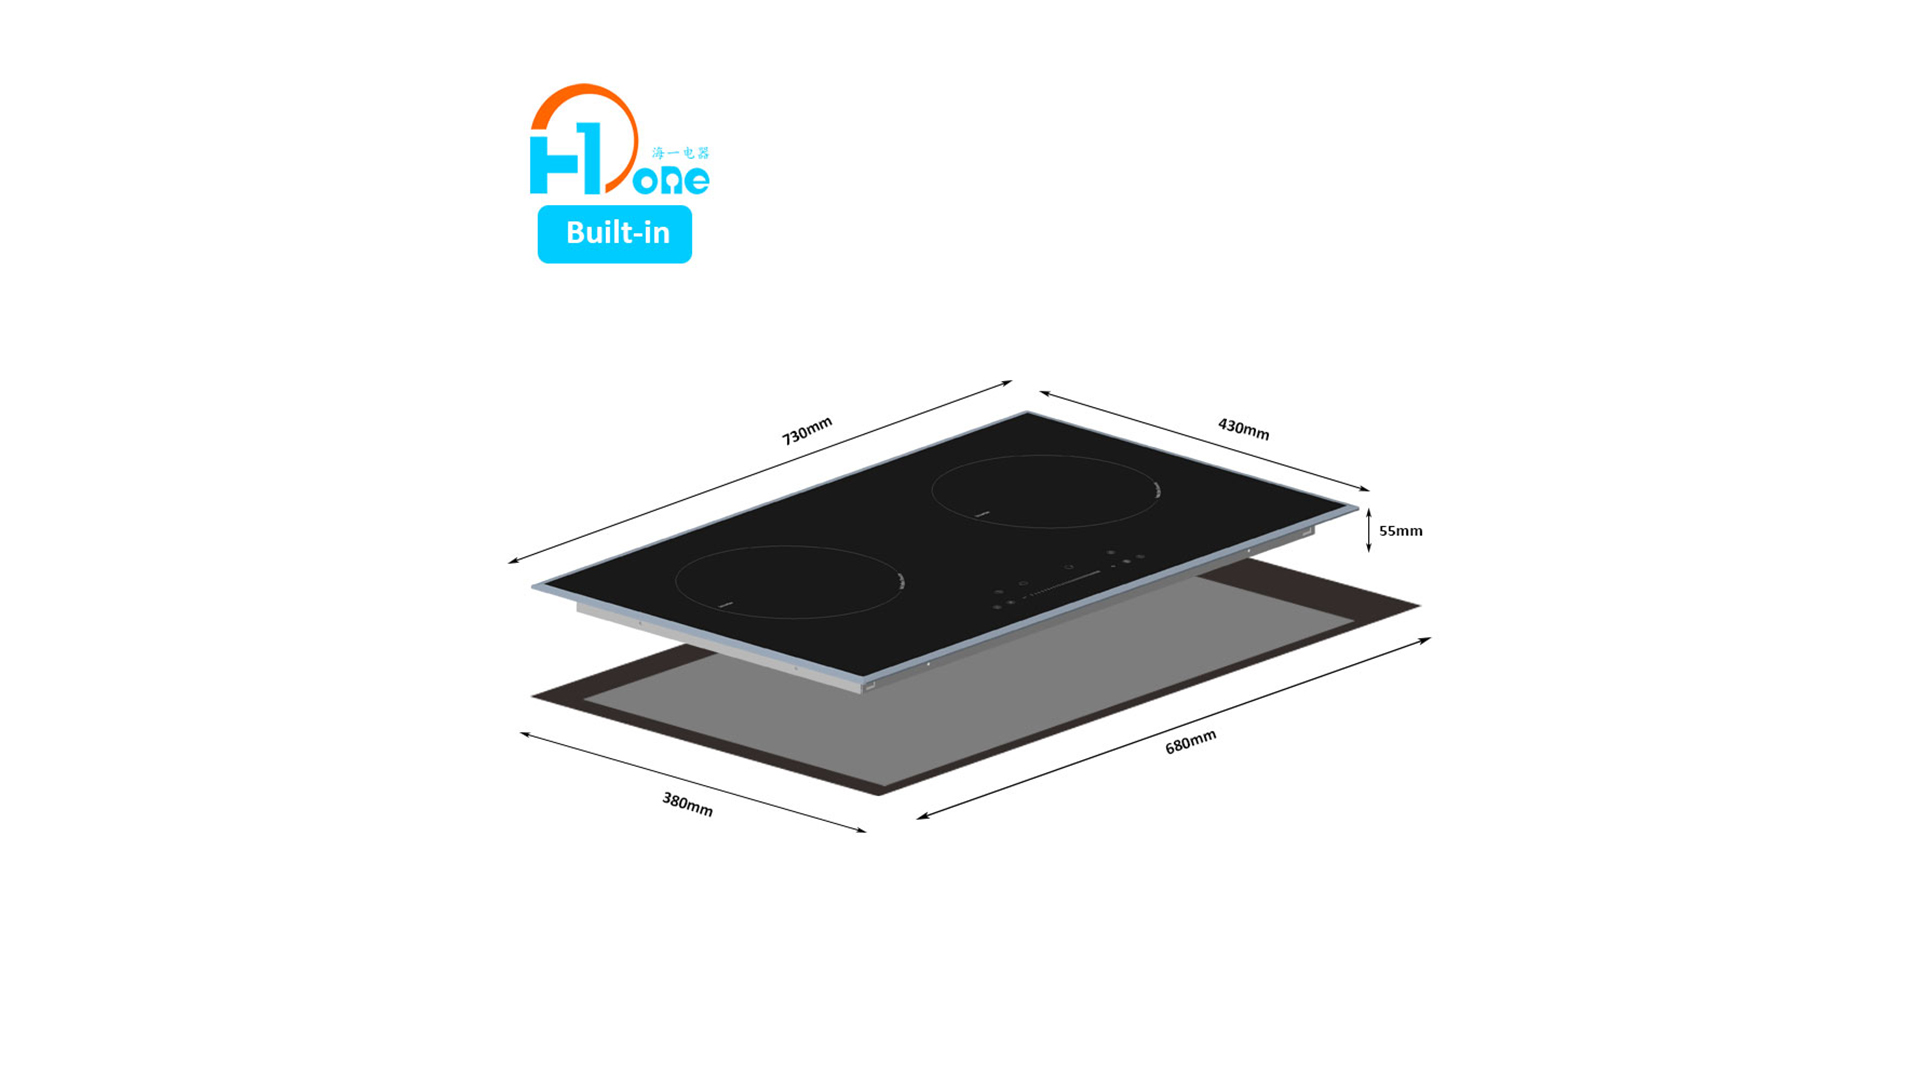 Chinese Original Design Manufacturer Shenzhen H-one Half Bridge Induction Technology Built-in Two Burner Induction Cooktop 8126-202